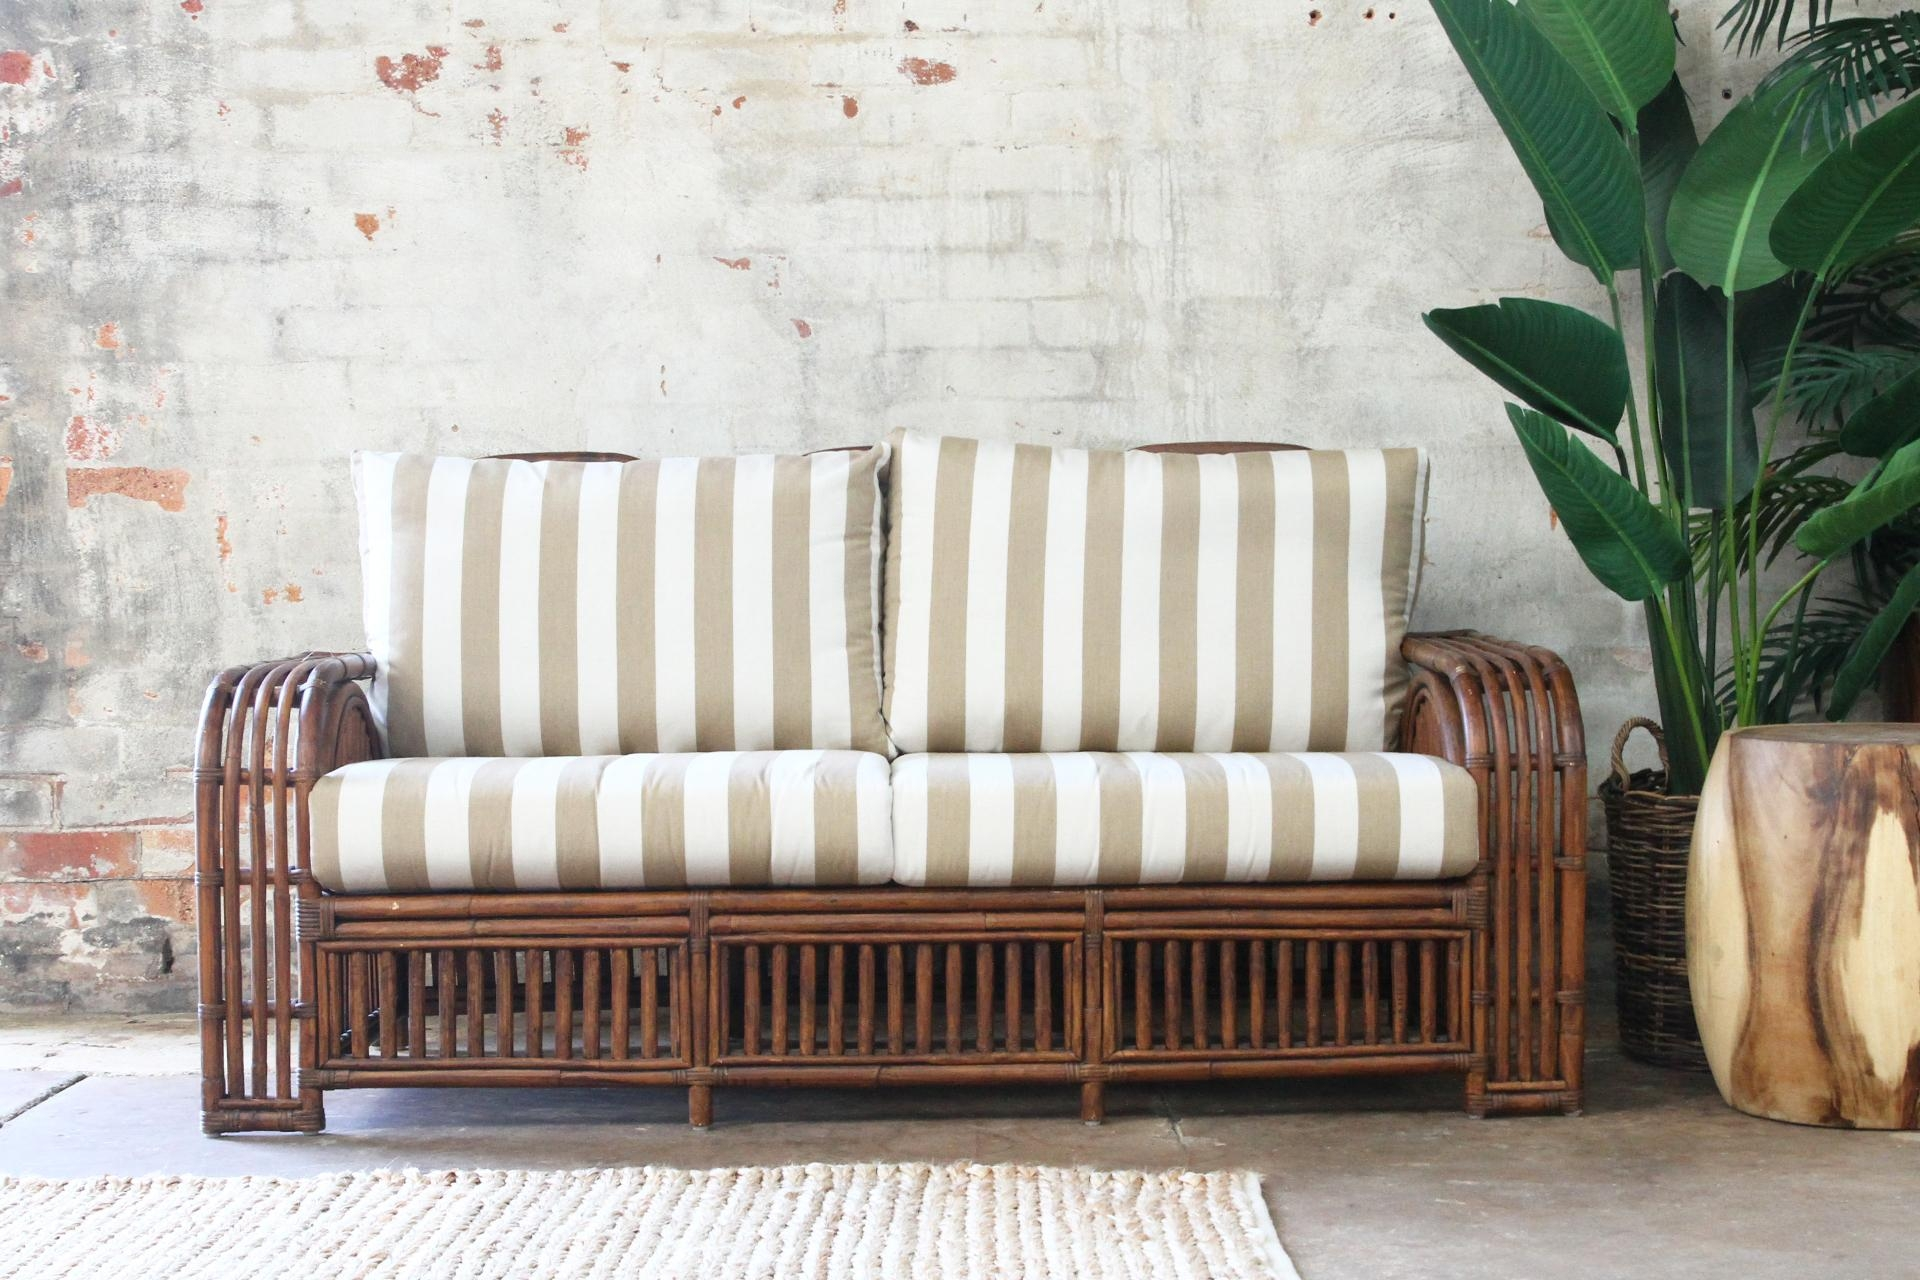 White Cane Furniture | Naturally Cane Rattan And Wicker Furniture Within White Cane Sofas (View 9 of 25)